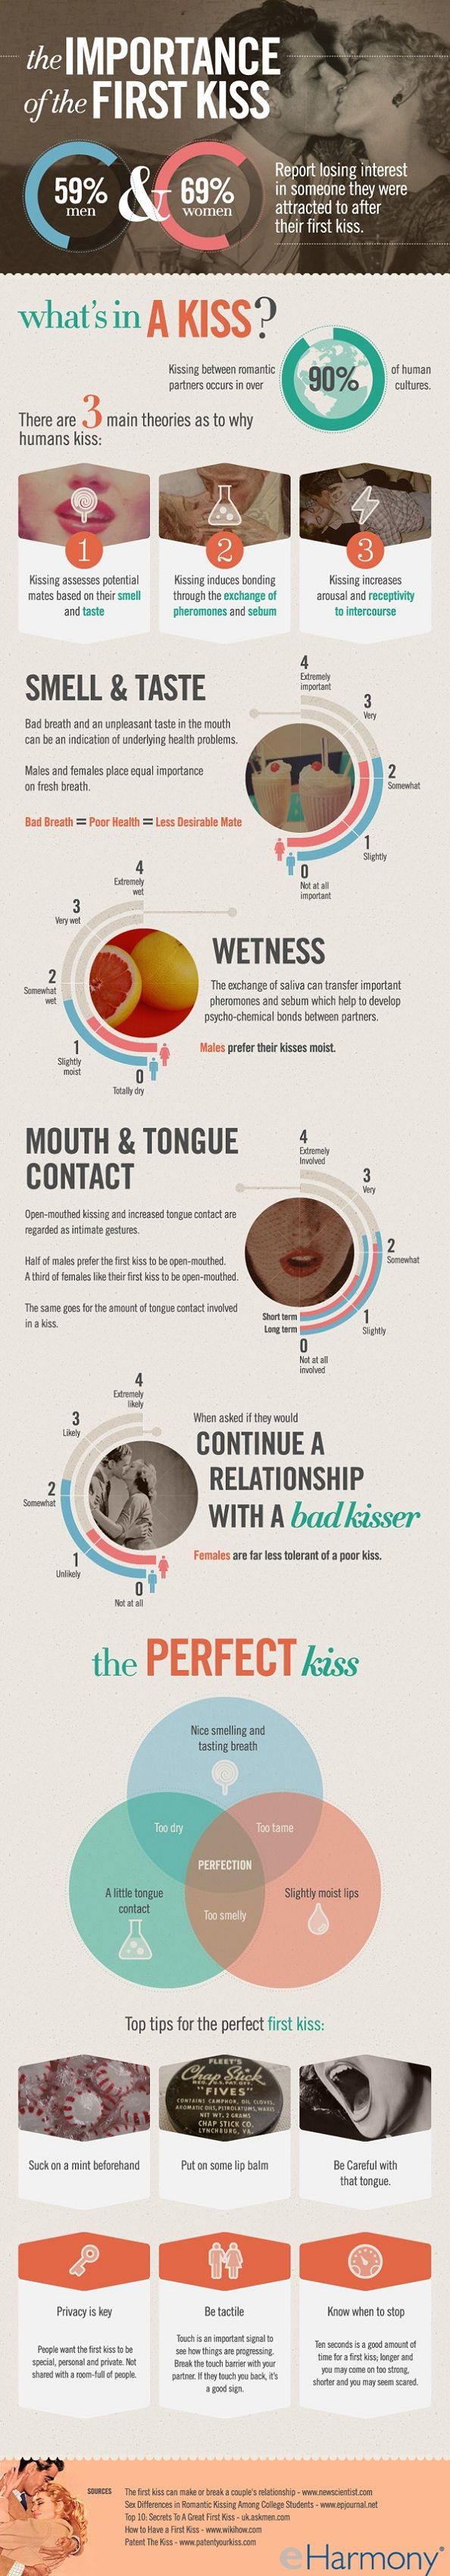 In every relationship you get one 'first kiss'. This kiss can make or break that new relationship. We offer some helpful suggestions to make it as near perfect as possible.